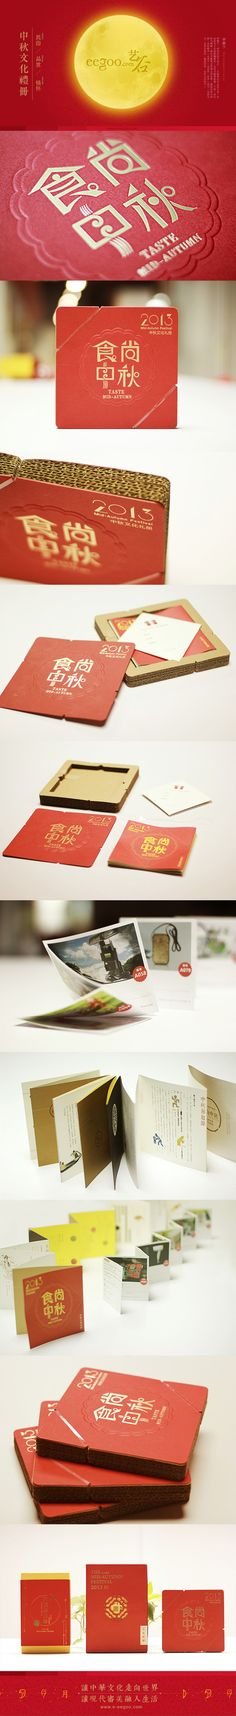 The Mid-Autumn Festival gift book by even liu, via Behance